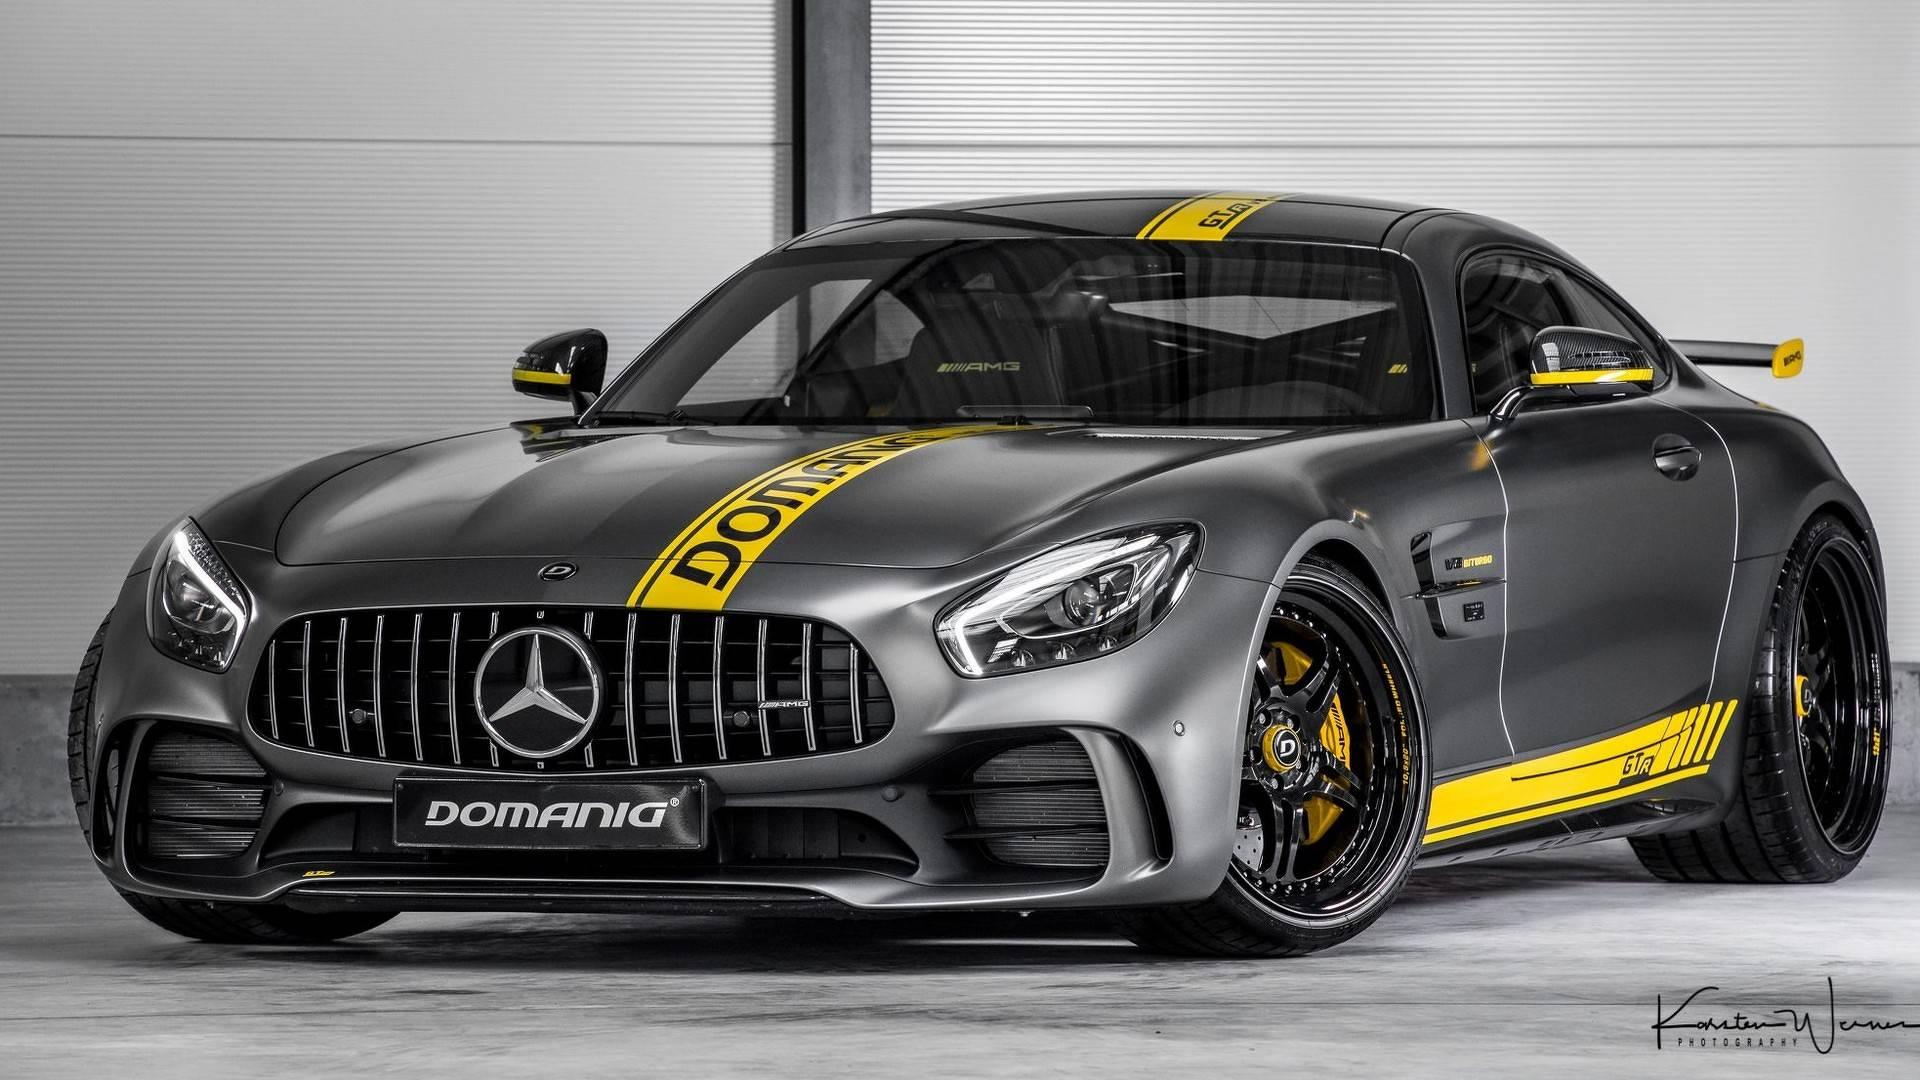 domanig gtr is not your average mercedes amg gt r tuning job autoevolution. Black Bedroom Furniture Sets. Home Design Ideas